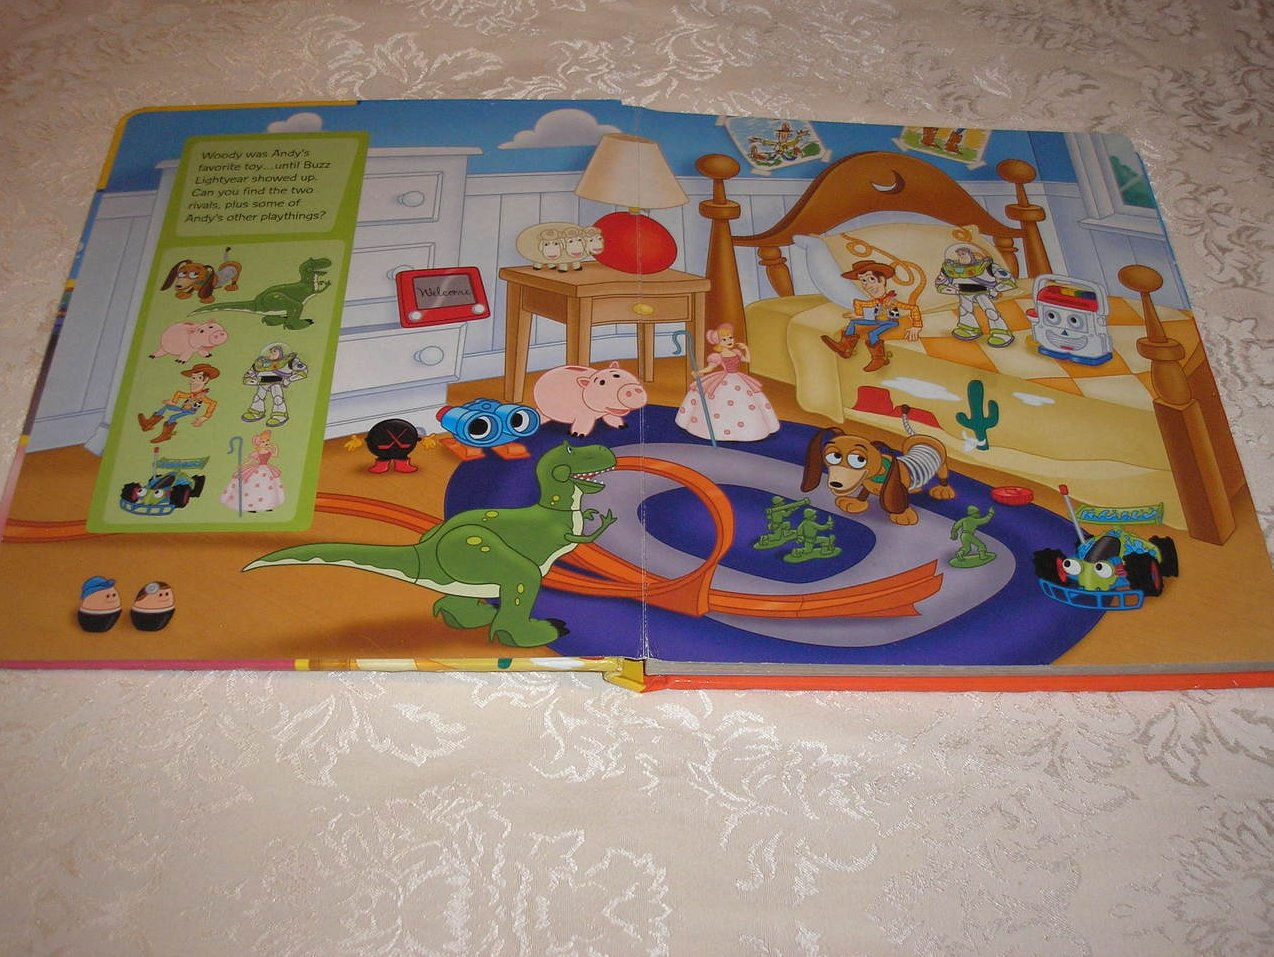 Image 1 of Disney Pixar Toy Story Look and Find padded board book